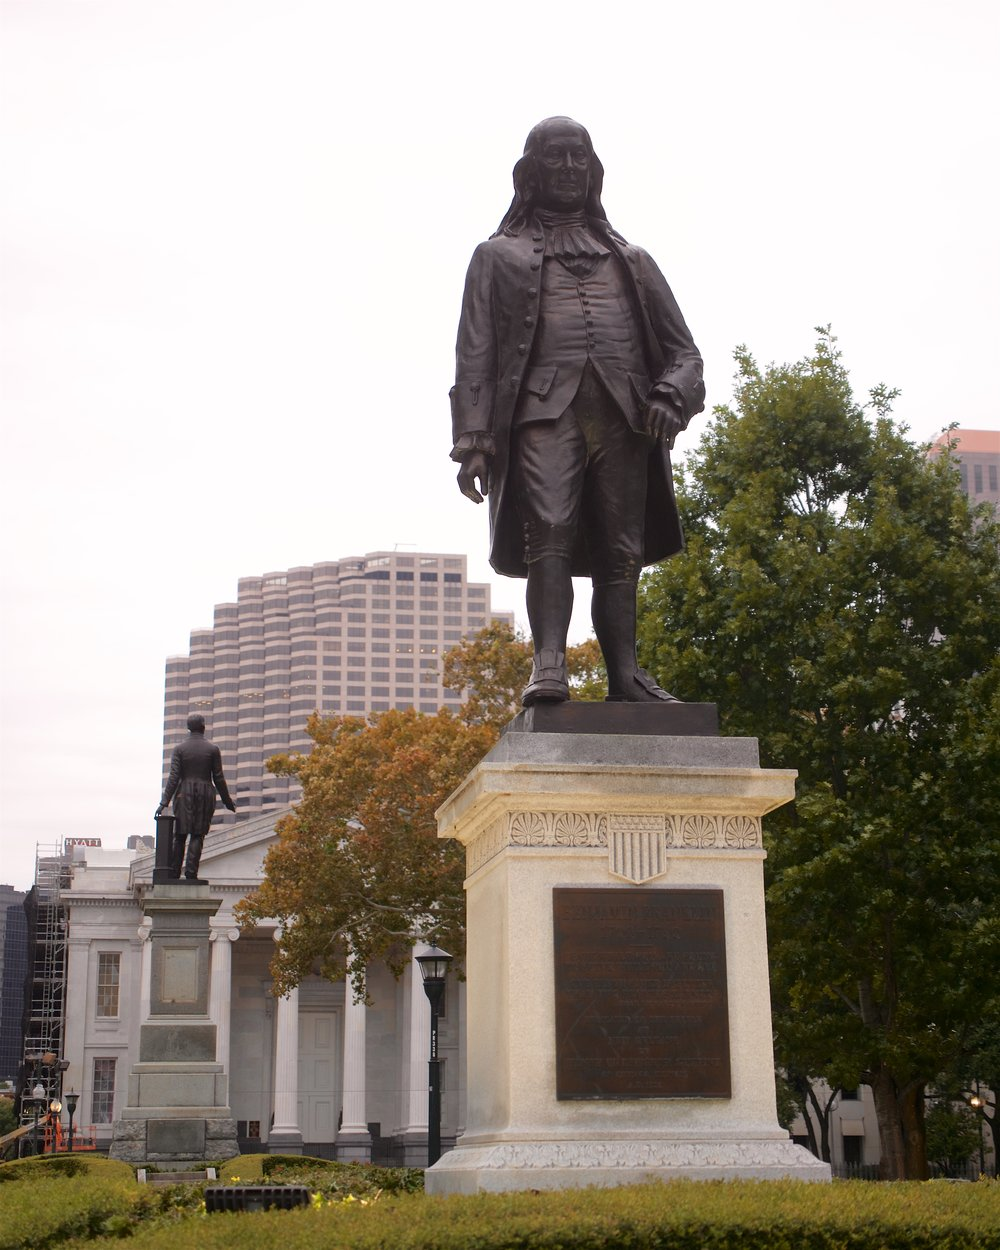 Statue of Benjamin Franklin at Lafayette Square